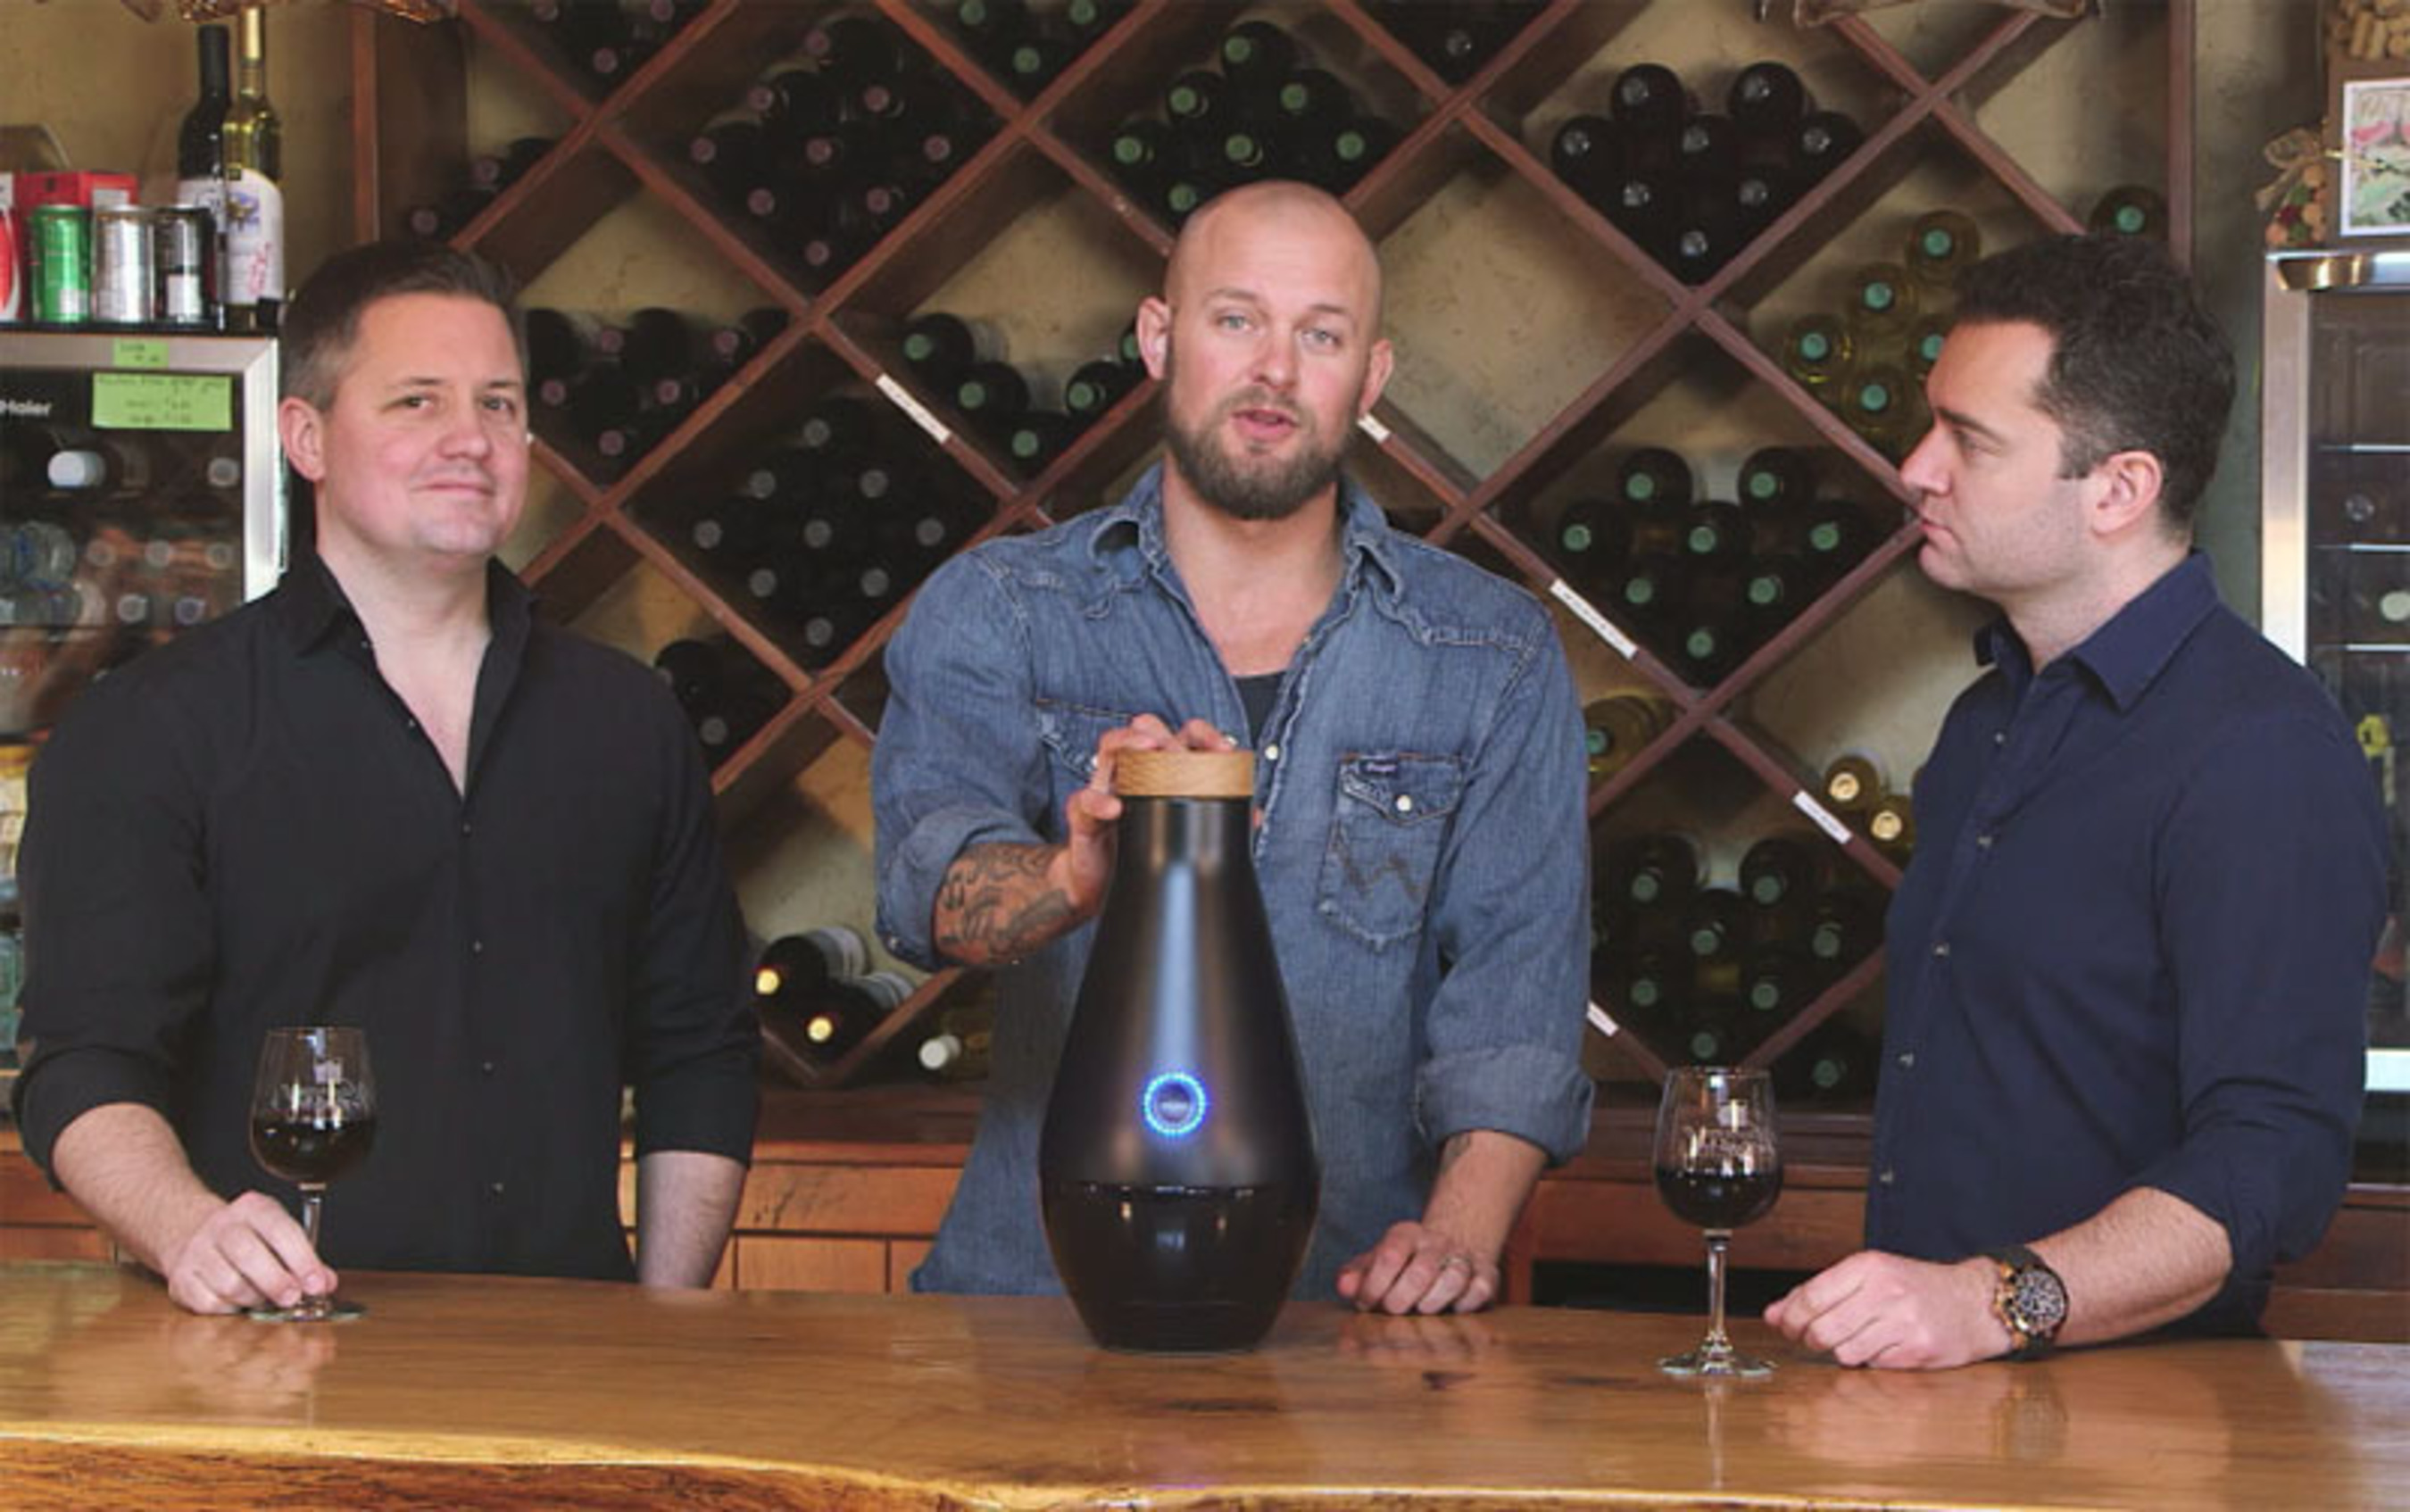 Wine industry experts, Kevin Boyer, President and CEO of CustomVine.com and Philip James, Chairman of CustomVine.com, joined forces with Doc Hendley and www.winetowater.org for The Miracle Machine project to inspire people into action, because there is no life without water. (PRNewsFoto/Wine to Water) (PRNewsFoto/WINE TO WATER)